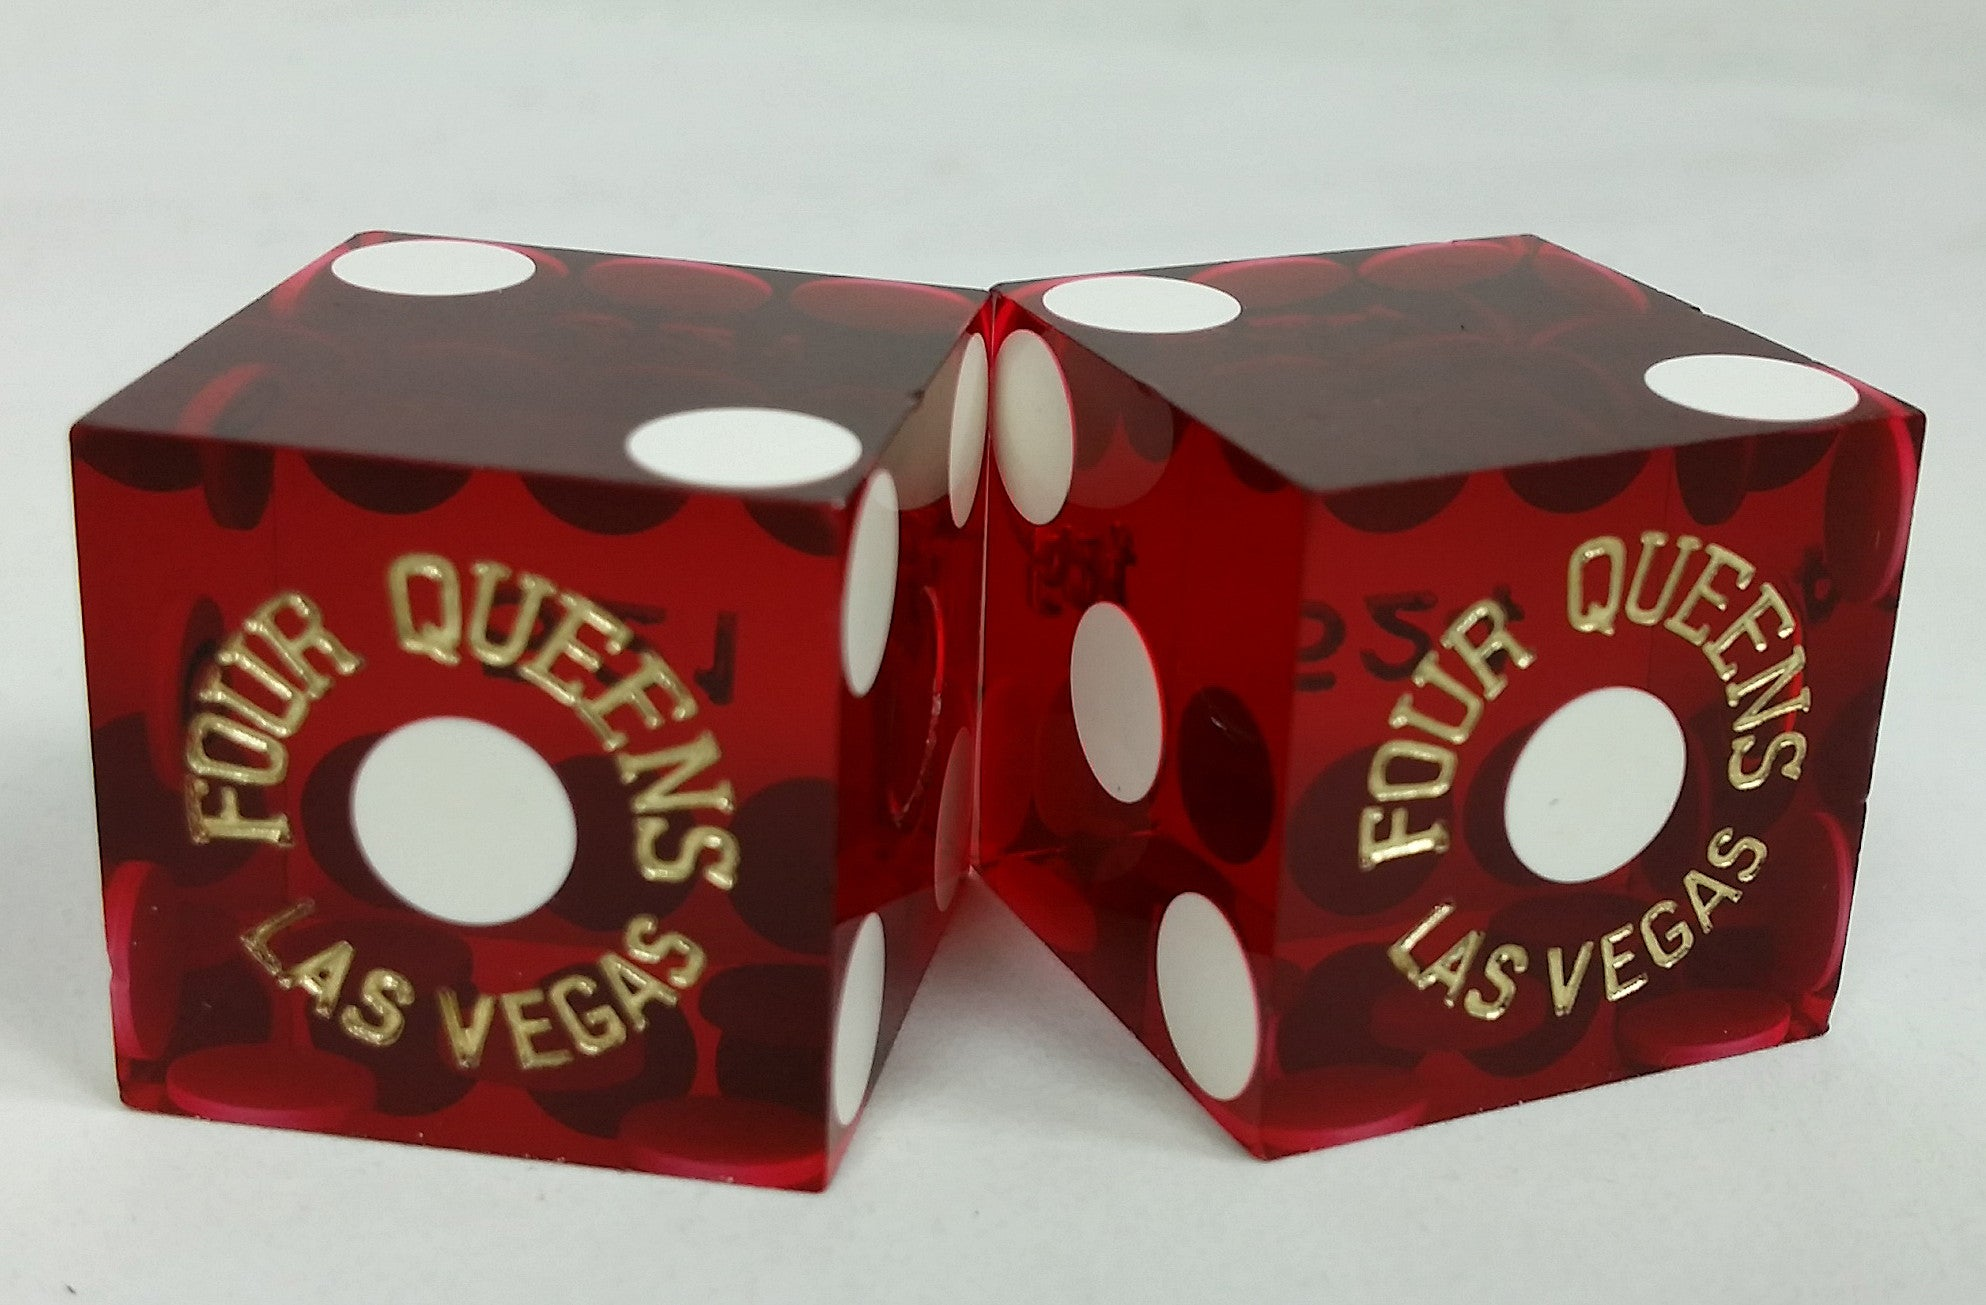 Four Queens Casino Las Vegas Used Pair of Dice - Spinettis Gaming